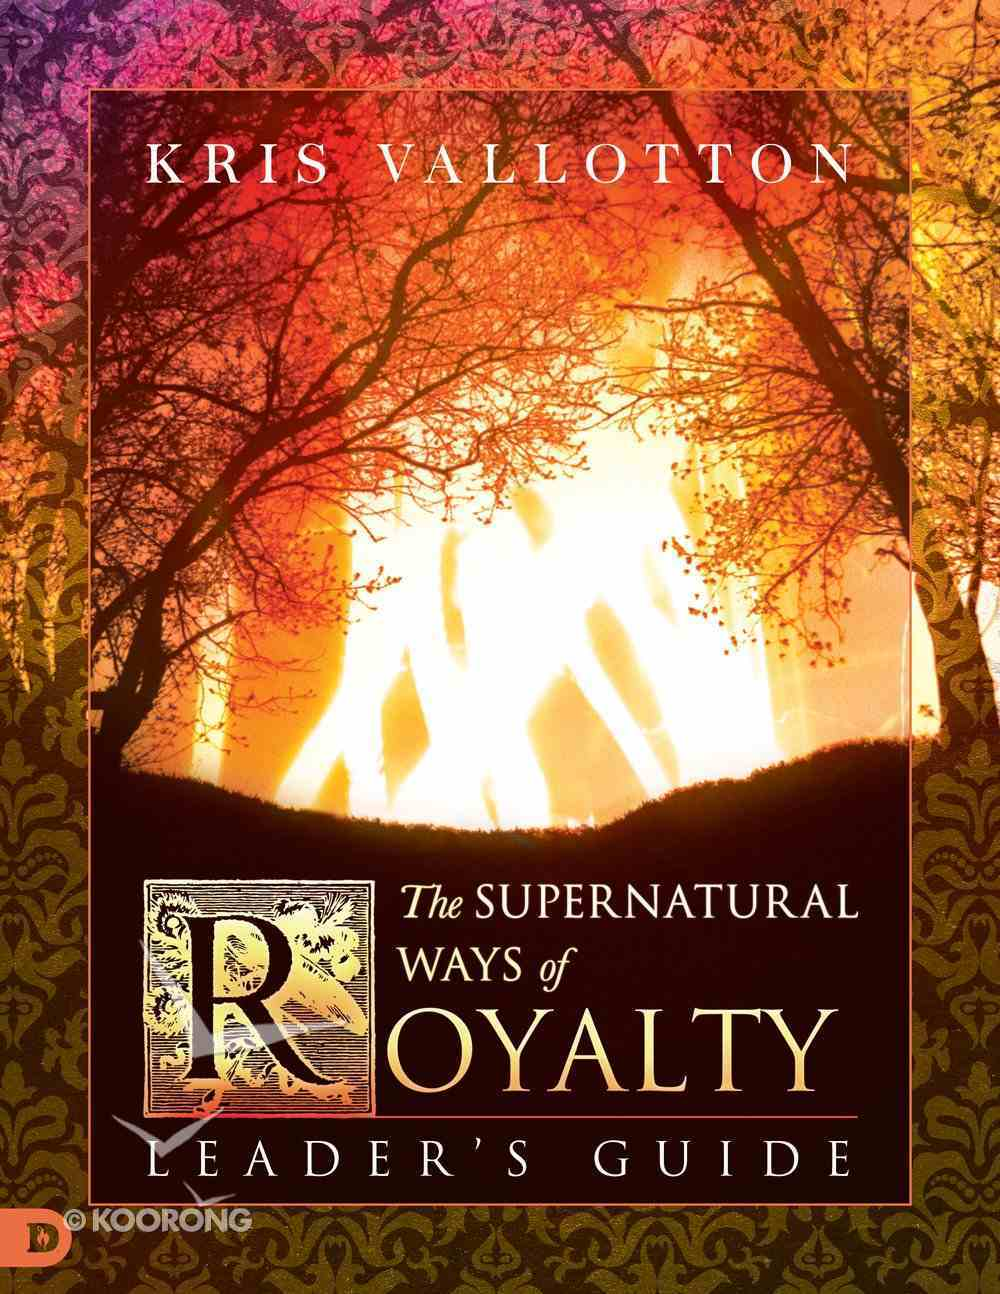 The Supernatural Ways of Royalty (Leader's Guide) Paperback